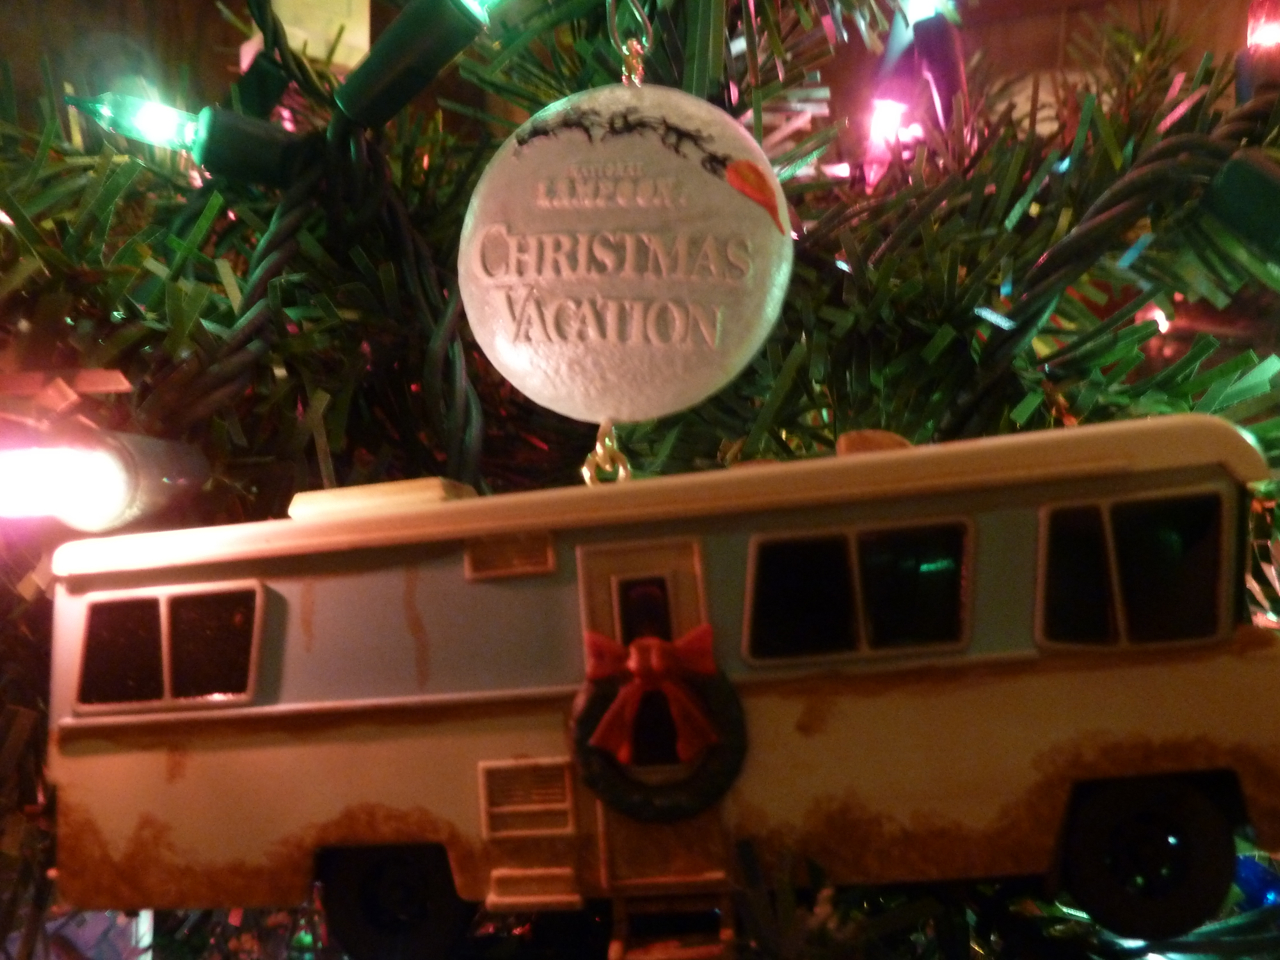 Christmas Vacation Rv.Christmas Vacation Rv Ugly Awesome